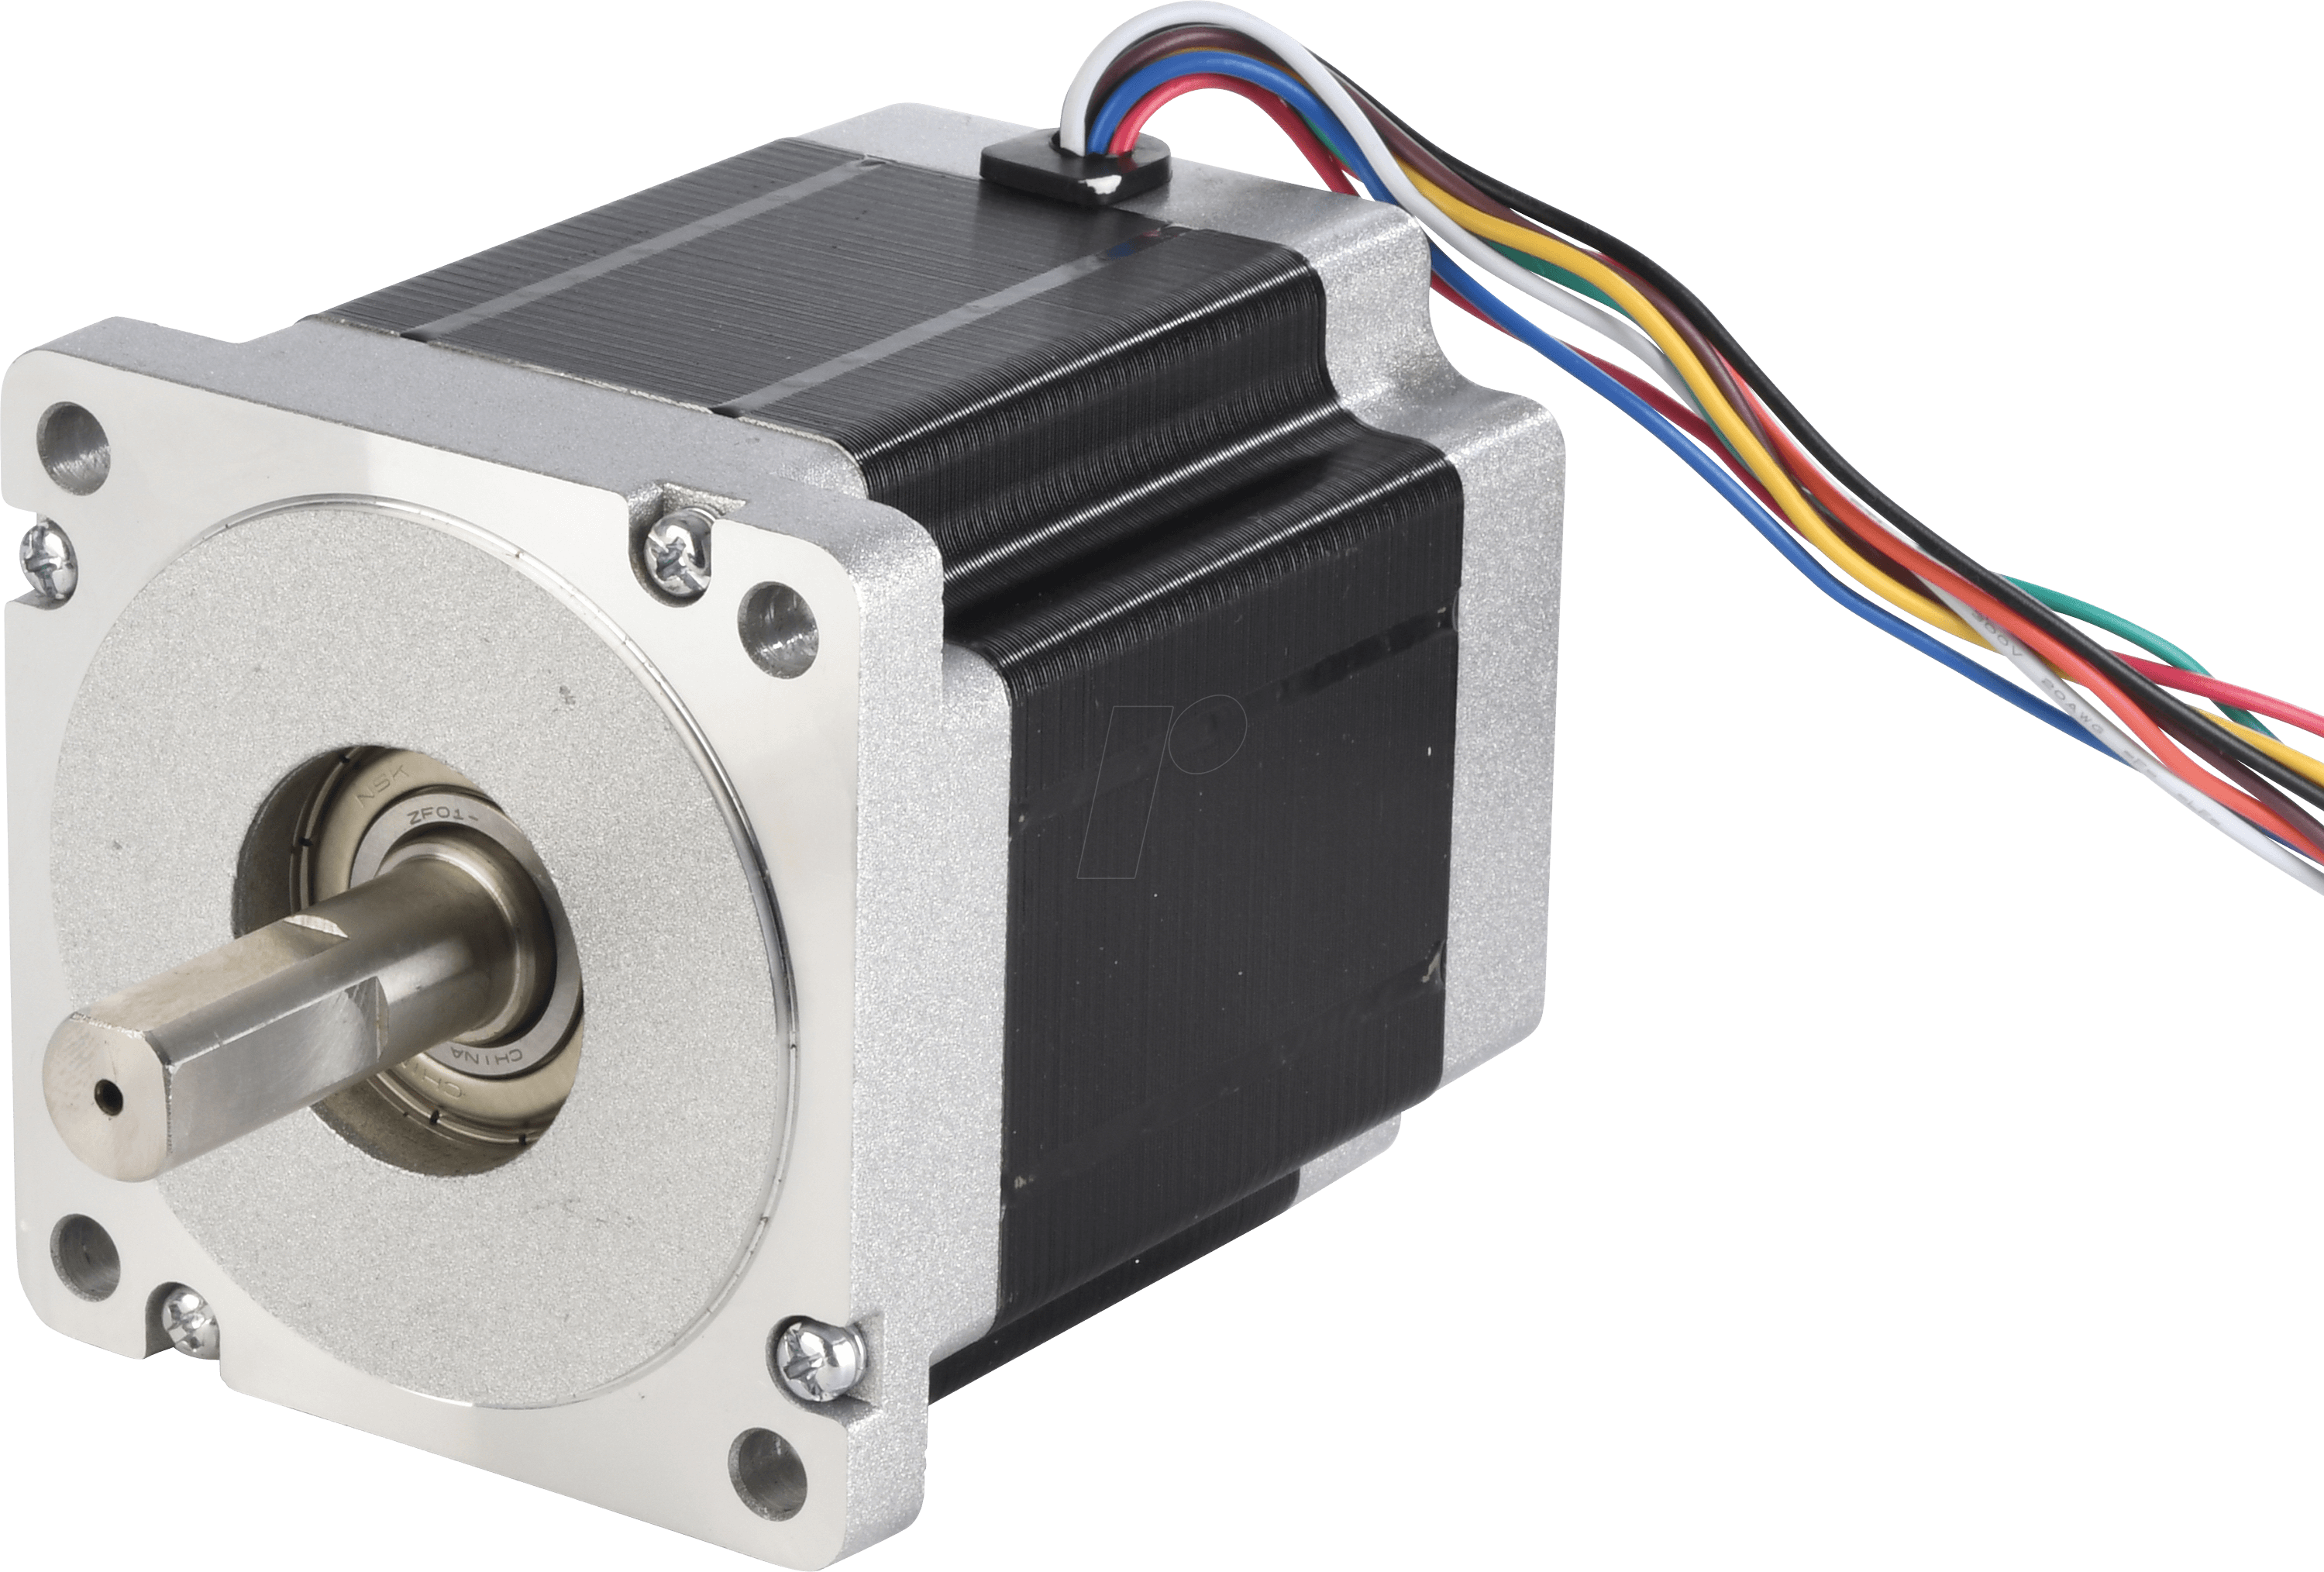 Act 34hs9820 Hybrid Stepper Motor Nema 34 18 2 A 64 V At Re To 4 Wire Telephone Circuit